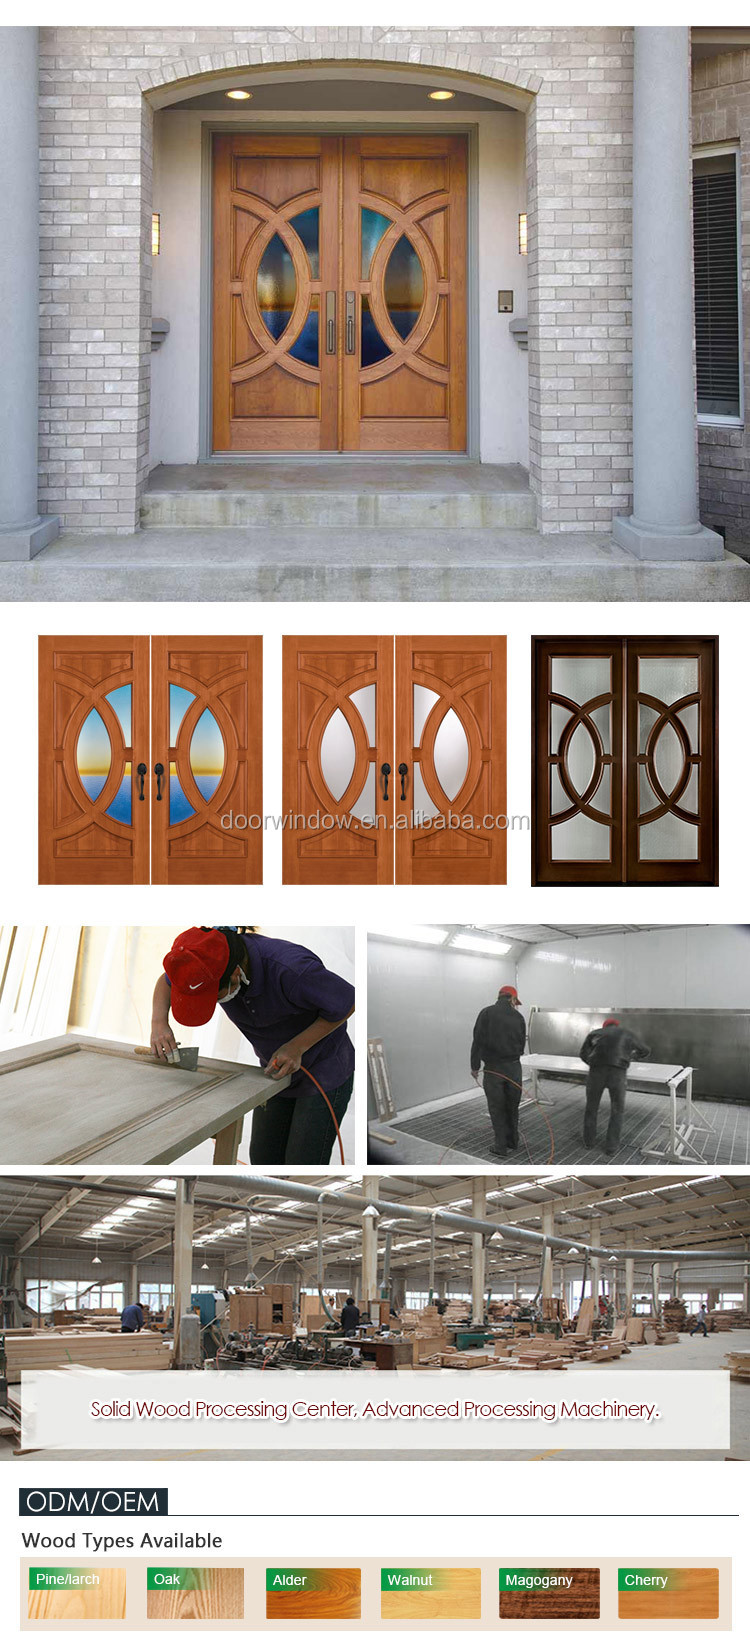 Super September Purchasing 2018 hot new products spring doors on sale door for shopping mall soundproof interior french